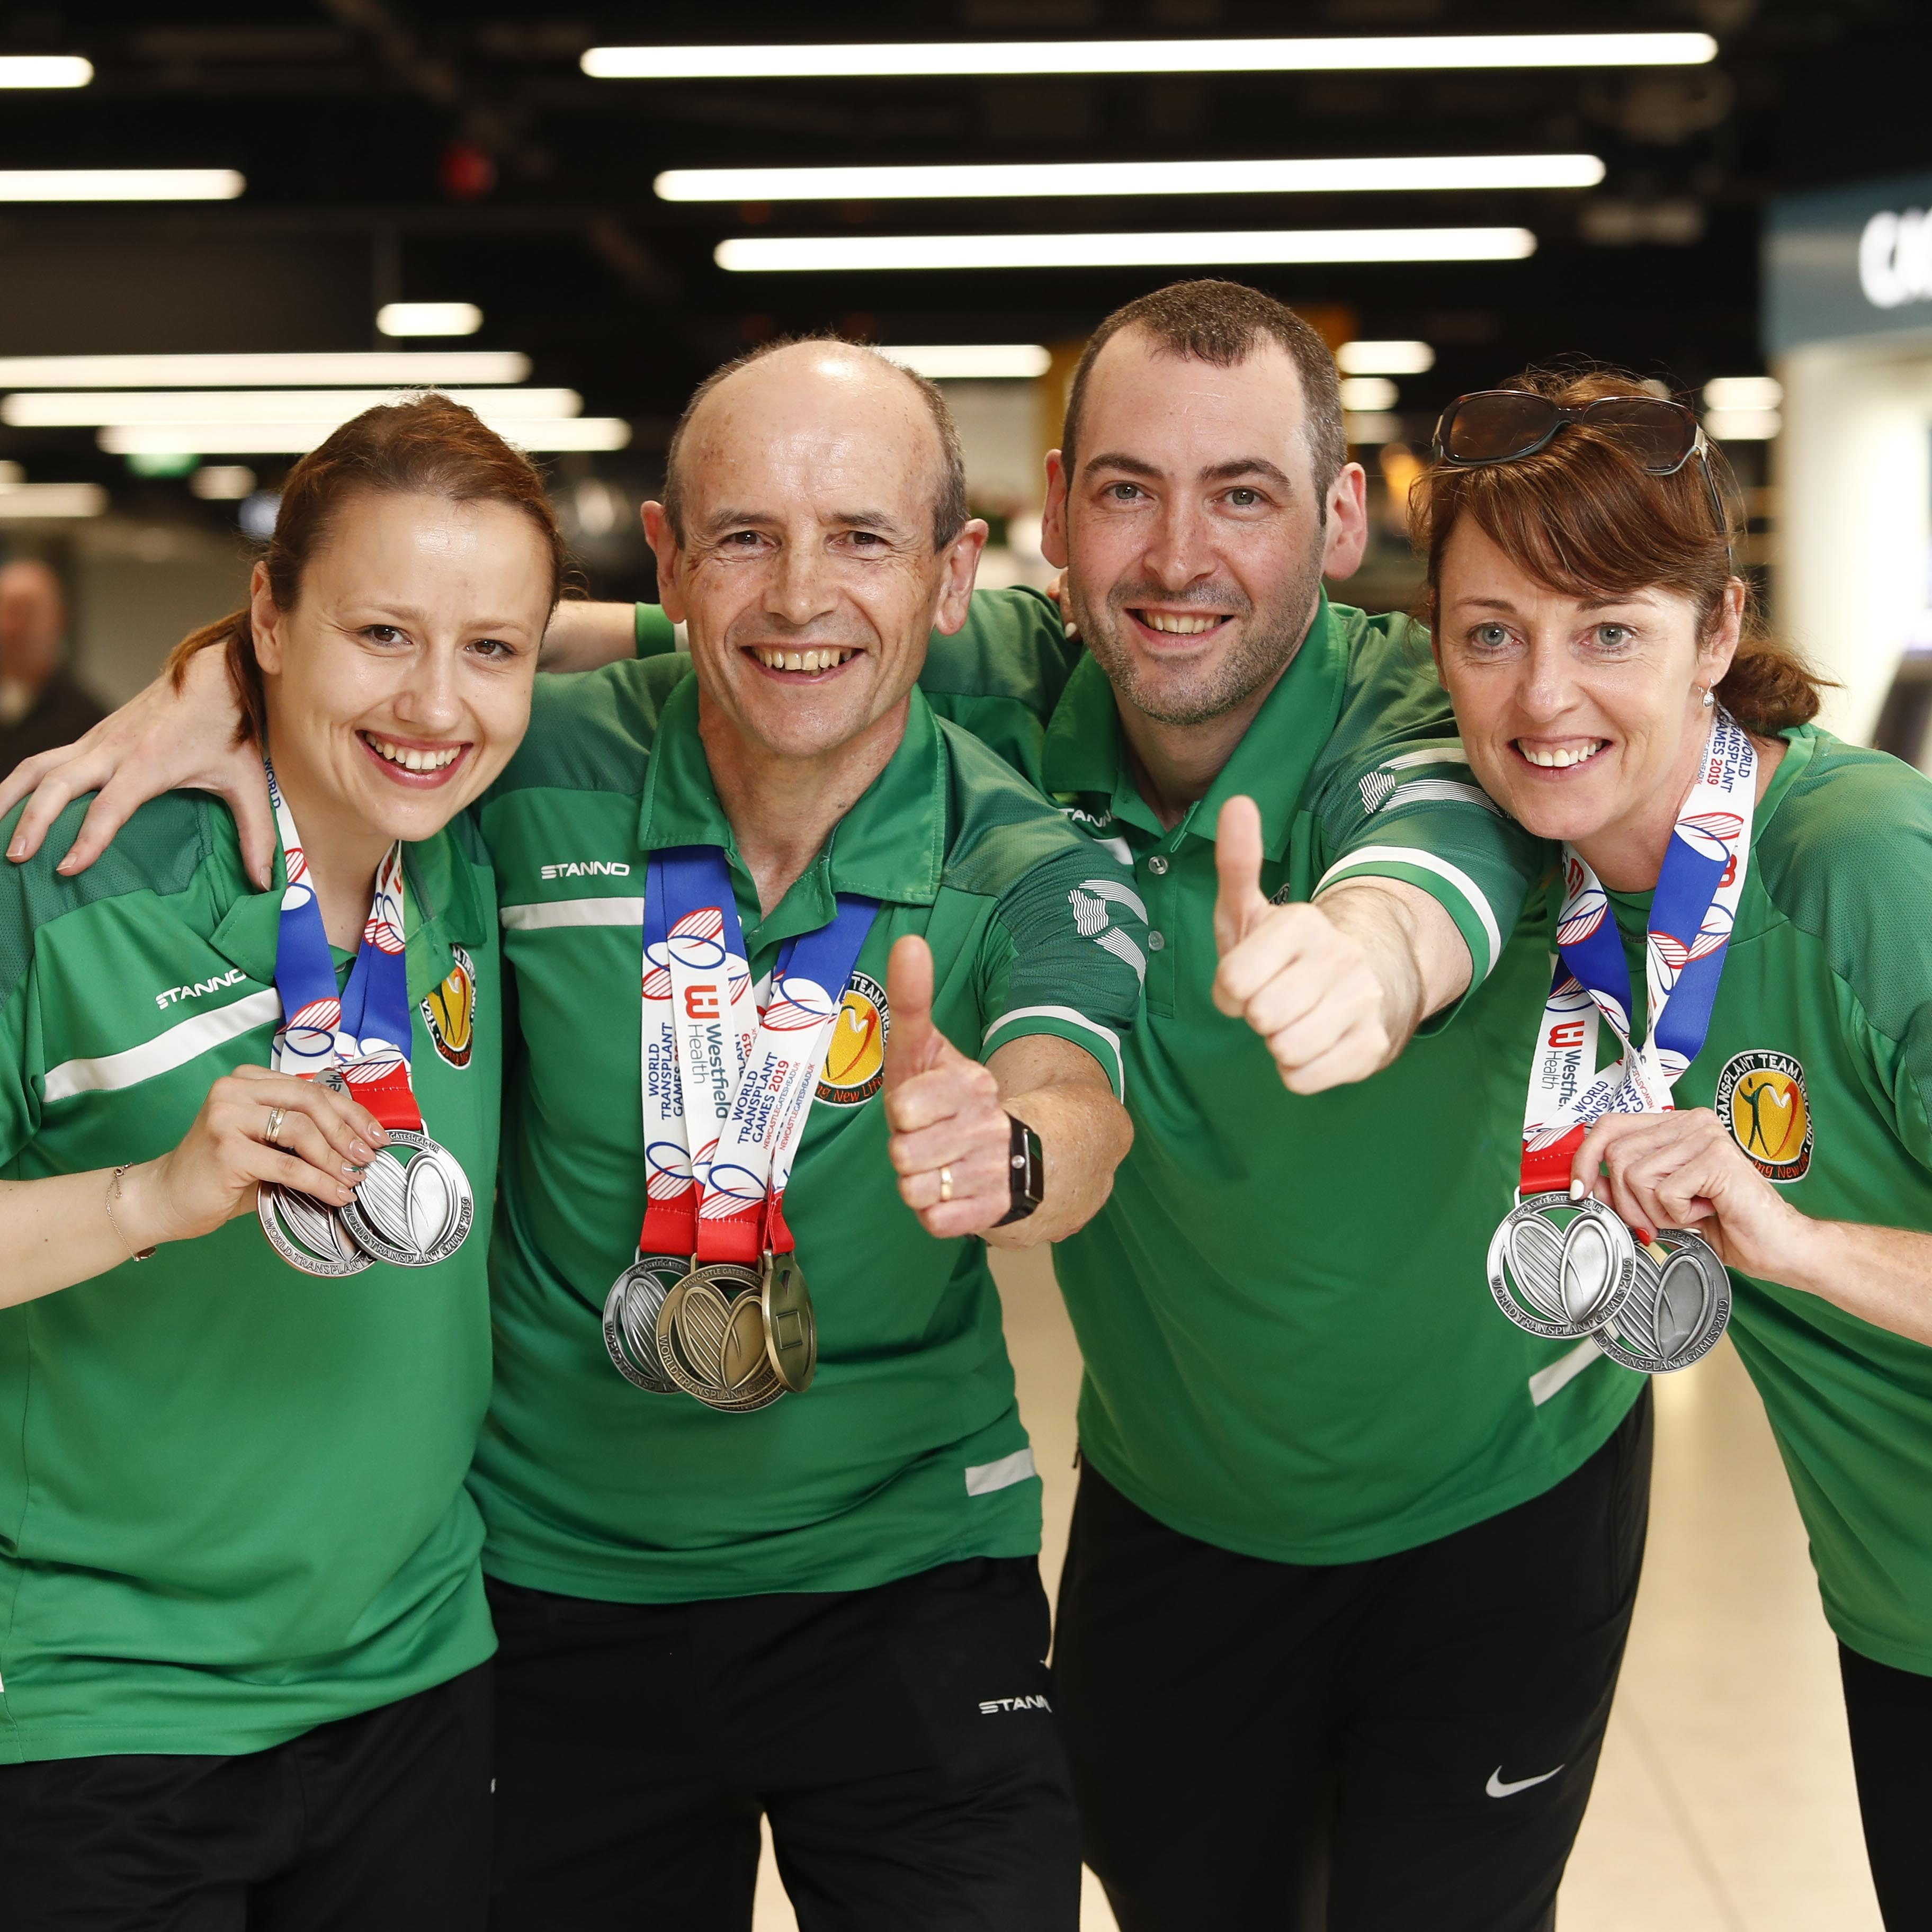 *** NO REPRODUCTION FEE *** DUBLIN : 24/8/2019 : Team Ireland returns home from World Transplant Games with mighty haul of 50 medals. Pictured was Transplant Team Ireland team members arriving back to Dublin Airport from the World Transplant Games 2019 held in Newcastle Gateshead, UK. 38 members of Transplant Team Ireland returned home this weekend from an unforgettable week-long World Transplant Games which were held in Newcastle Gateshead, UK.  The Irish team including heart, lung, liver, bone marrow and kidney transplant recipients, which ranges in age from 16 to 81, had a final medals tally of 50 medals including 17 Gold, 18 Silver and 15 Bronze which earned them a respectable 11th place on the leader board amongst 56 countries some with larger teams and the host country GB&NI was placed first with its 320 participants. The team's participation at the games was managed by the Irish Kidney Association who are hoping to attract more people to the team when they host the 2020 European Transplant & Dialysis Sports Championships in Dublin from 2-9 August. Picture Conor McCabe Photography.   MEDIA CONTACT : Gwen O'Donoghue mob. 086 8241447 email gwenodonoghue1@gmail.com